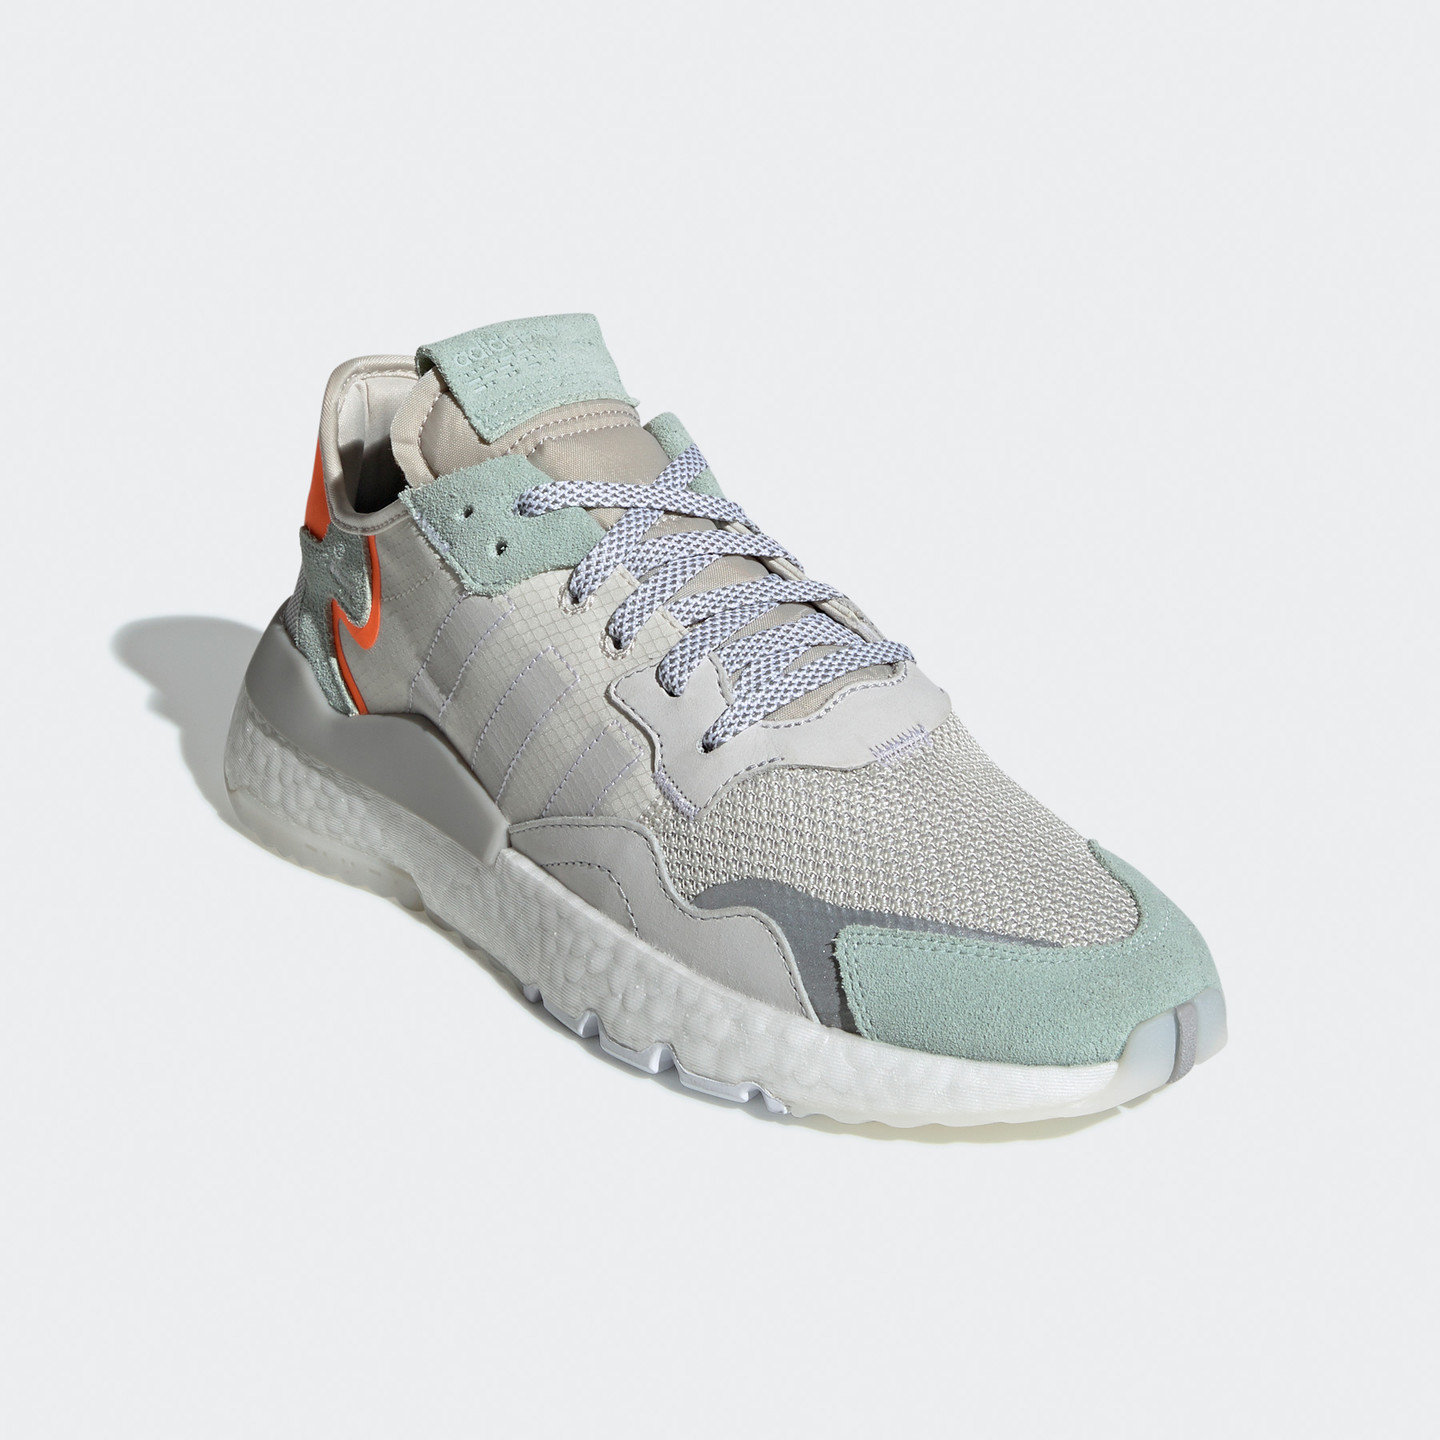 Adidas Nite Jogger Raw White / Grey / Vapour Green BD7956